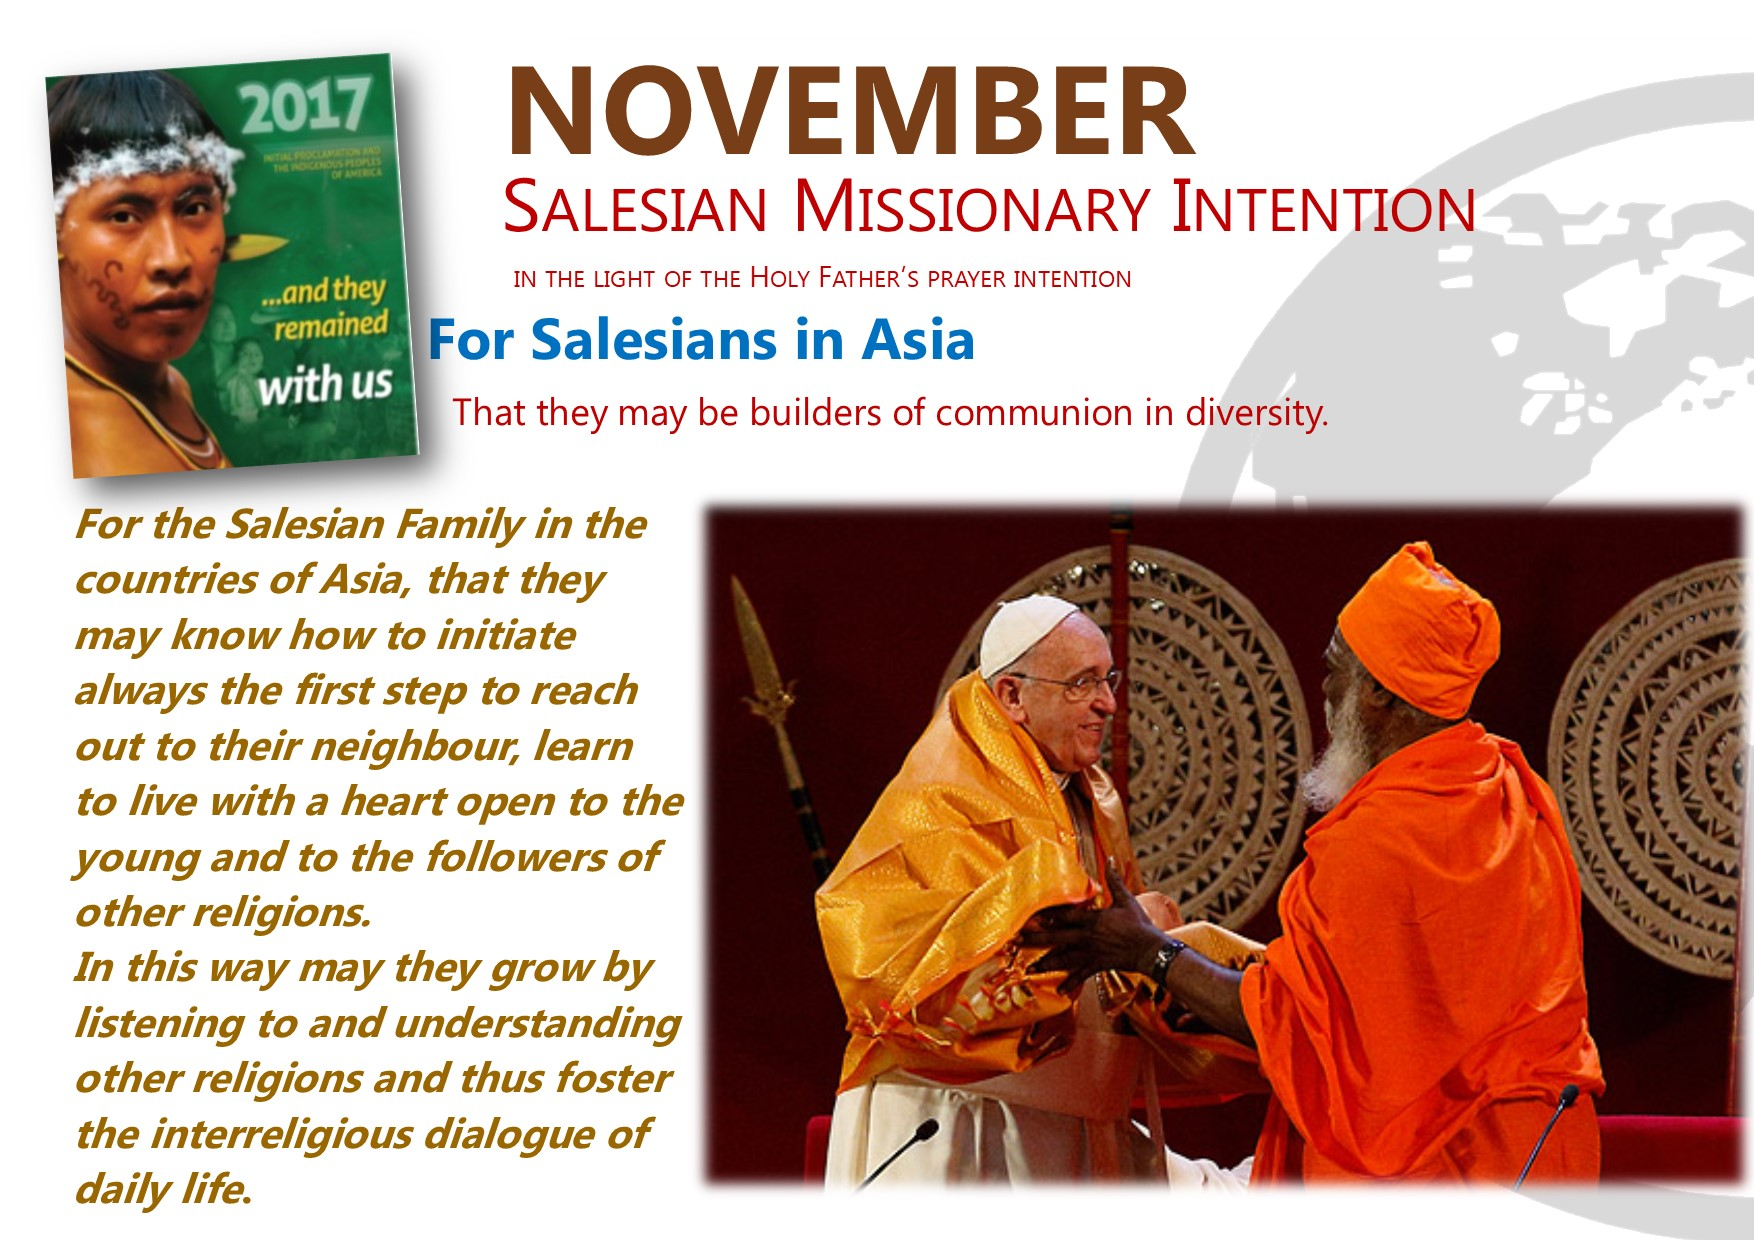 missionary intention nov 2017 eng.pub.jpg